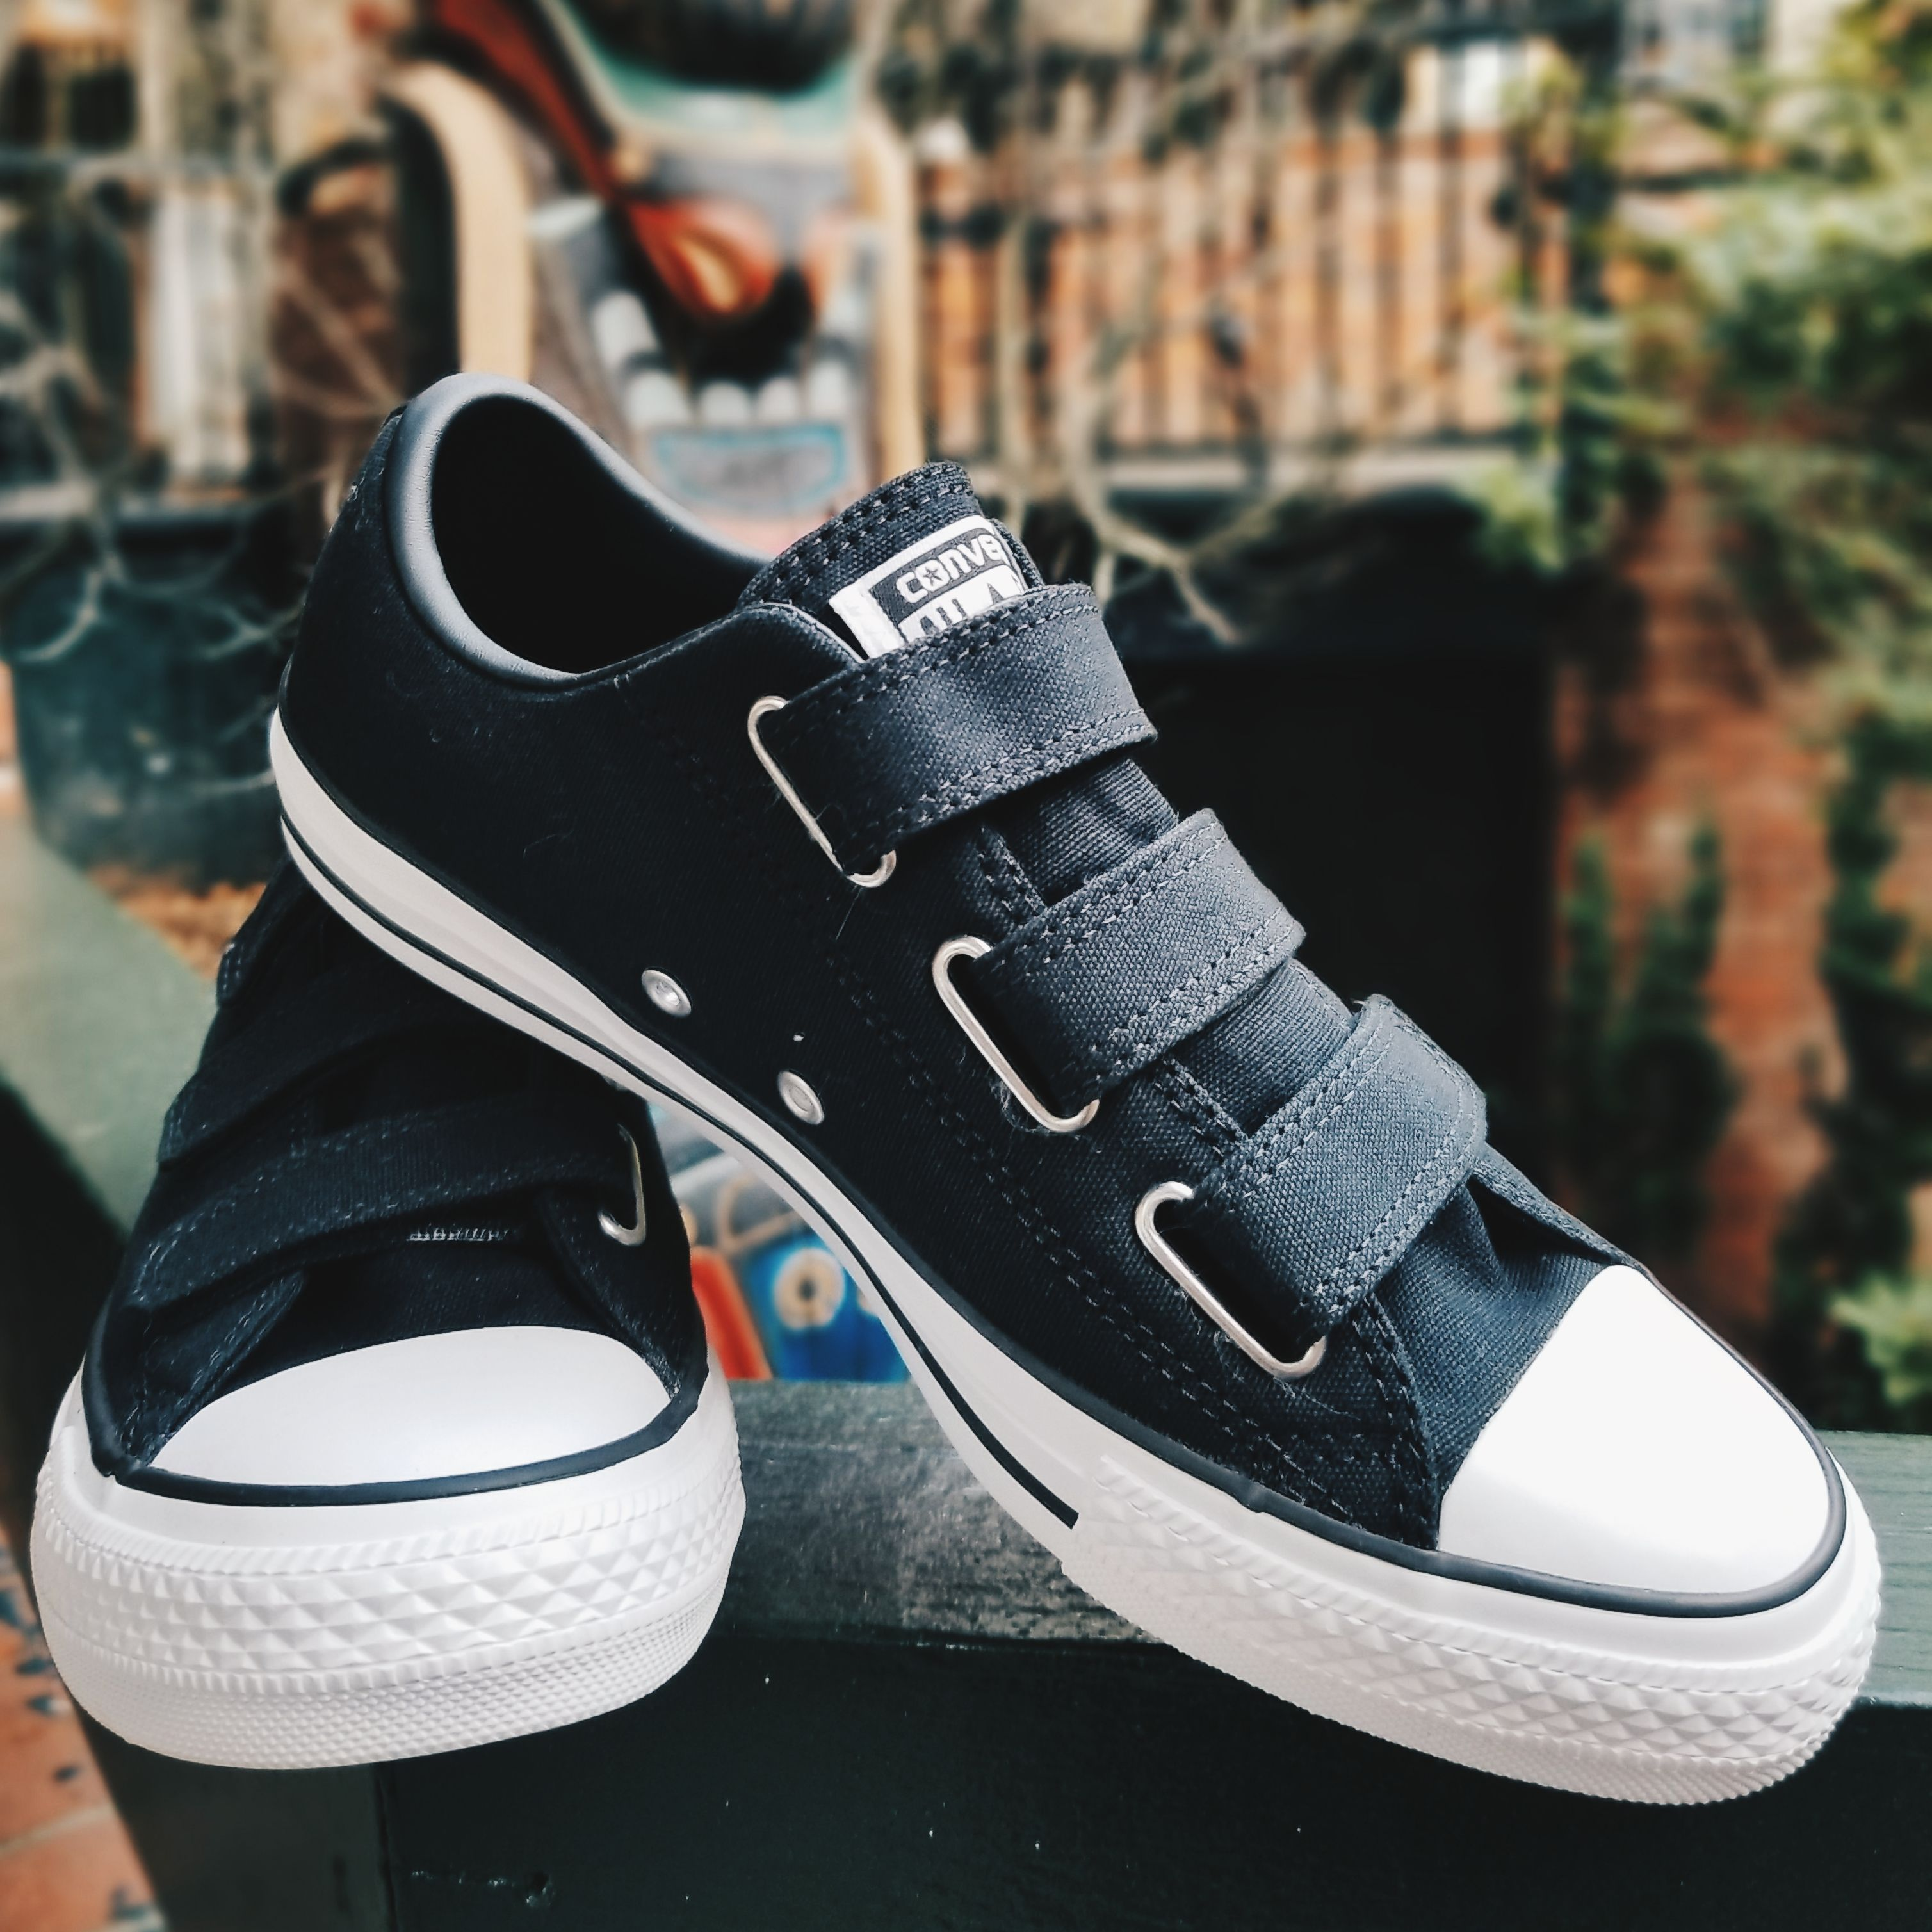 Chuck Top All Low Blackblackwhite Converse Women's 3v Taylor Star 8vmn0wN